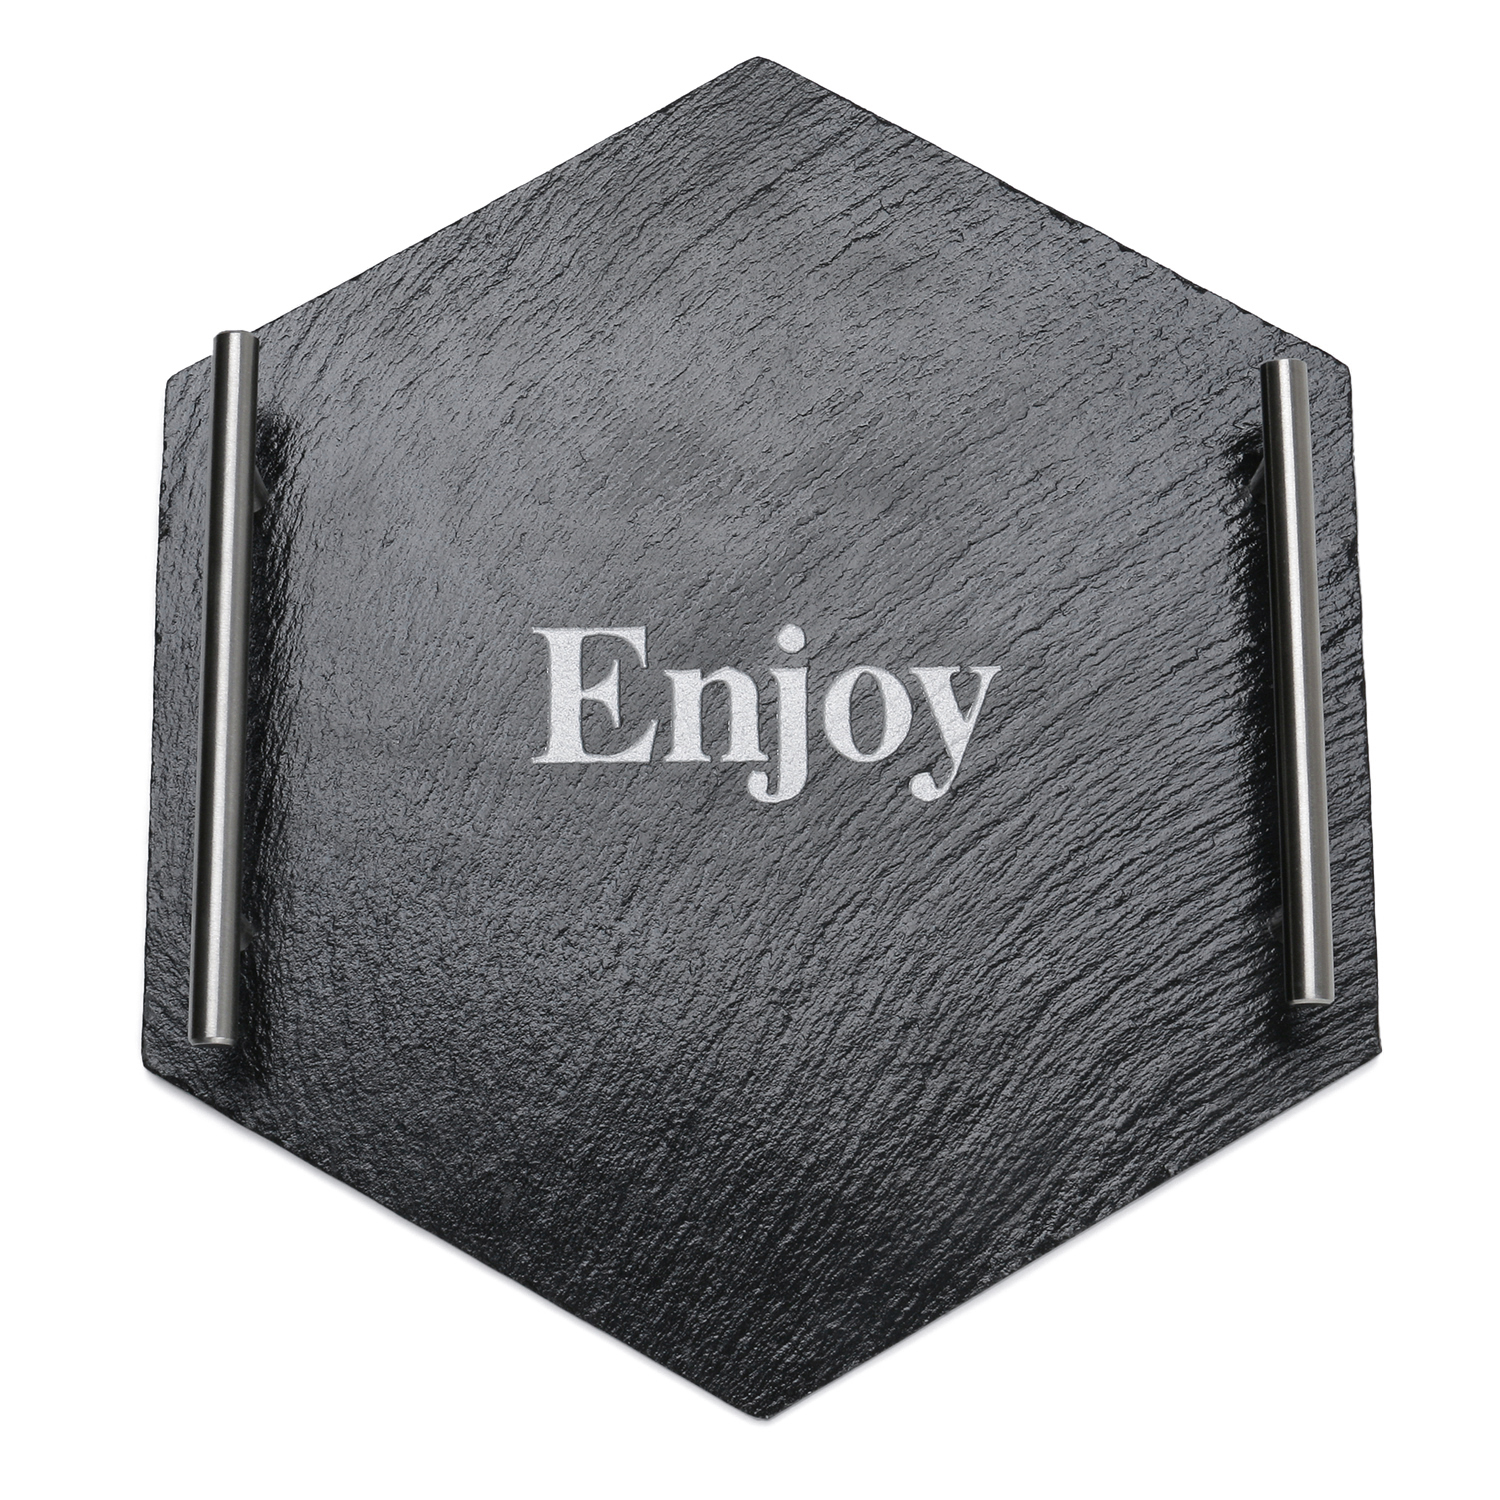 Slate Serving Tray With Metal Handles Hexagon